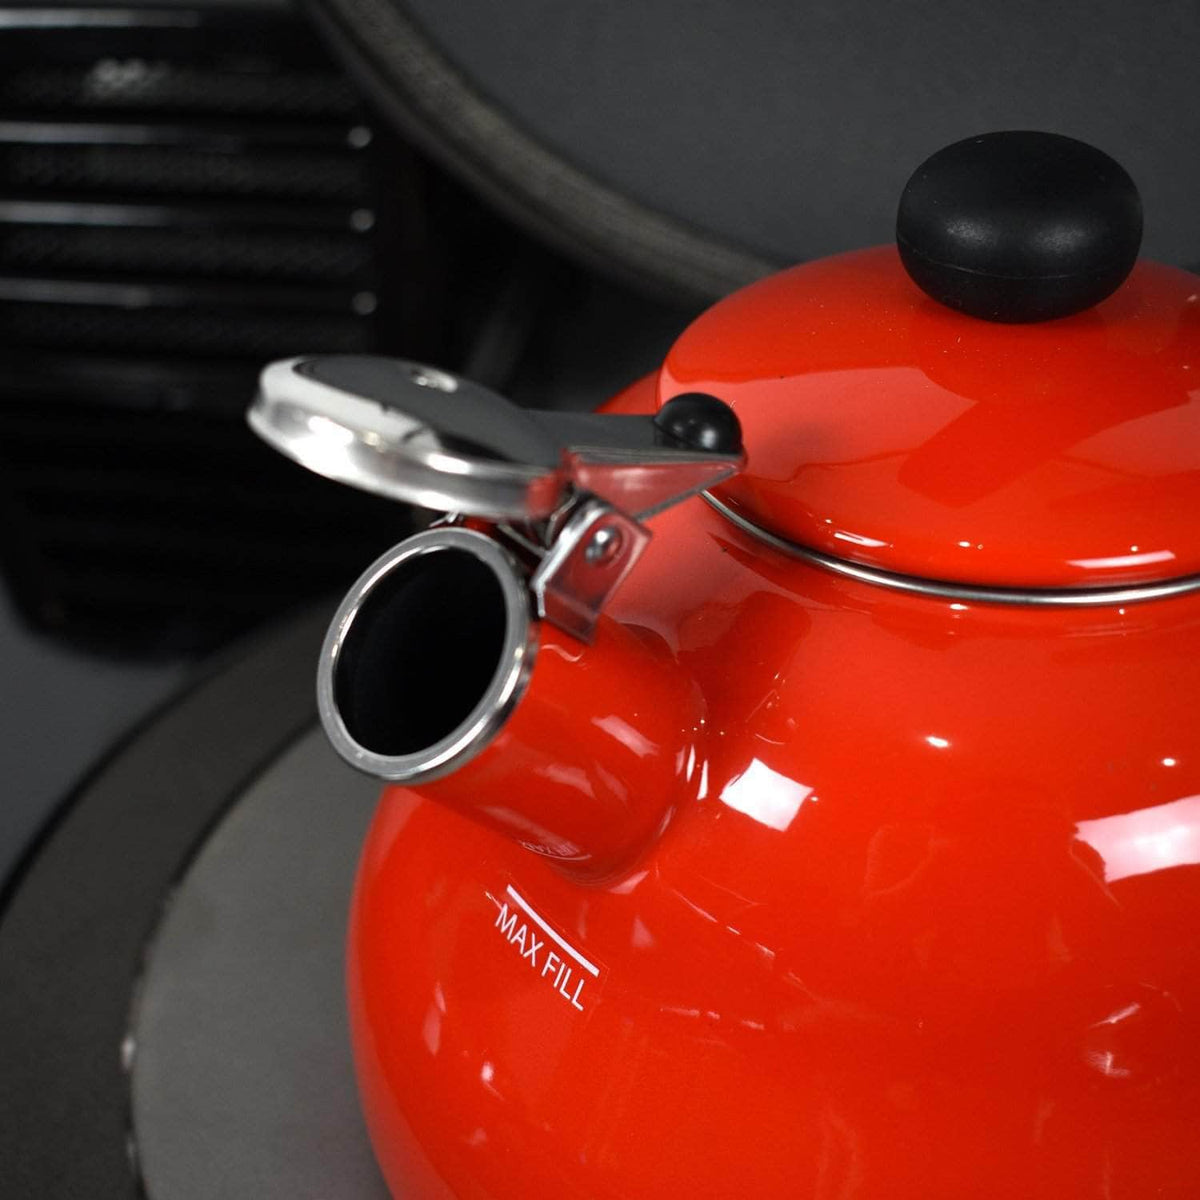 Whistling kettle in red enamel